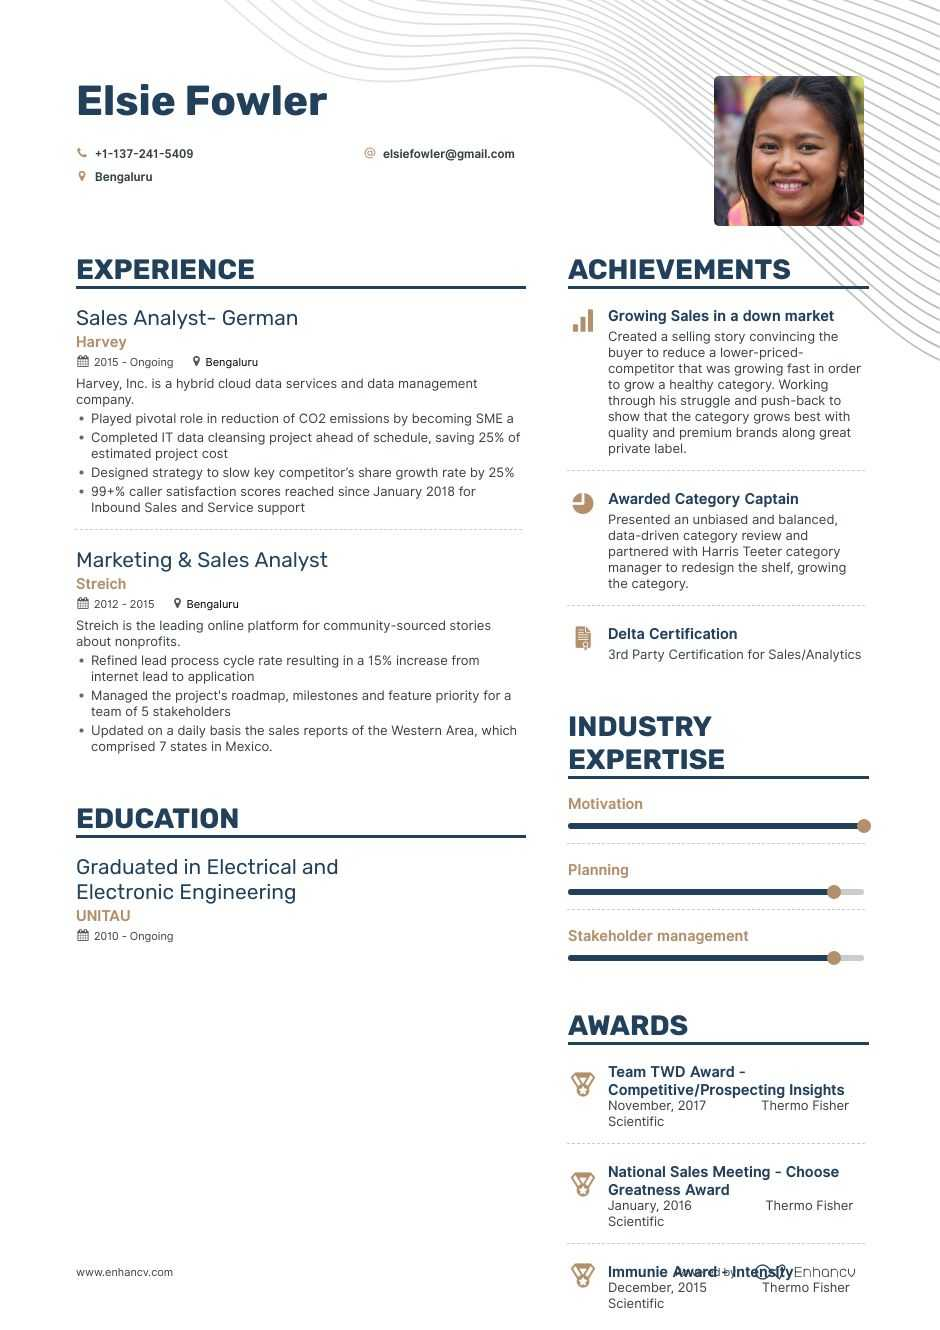 top analyst resume examples samples for enhancv perfect example make on phone free Resume Make Resume On Phone Free